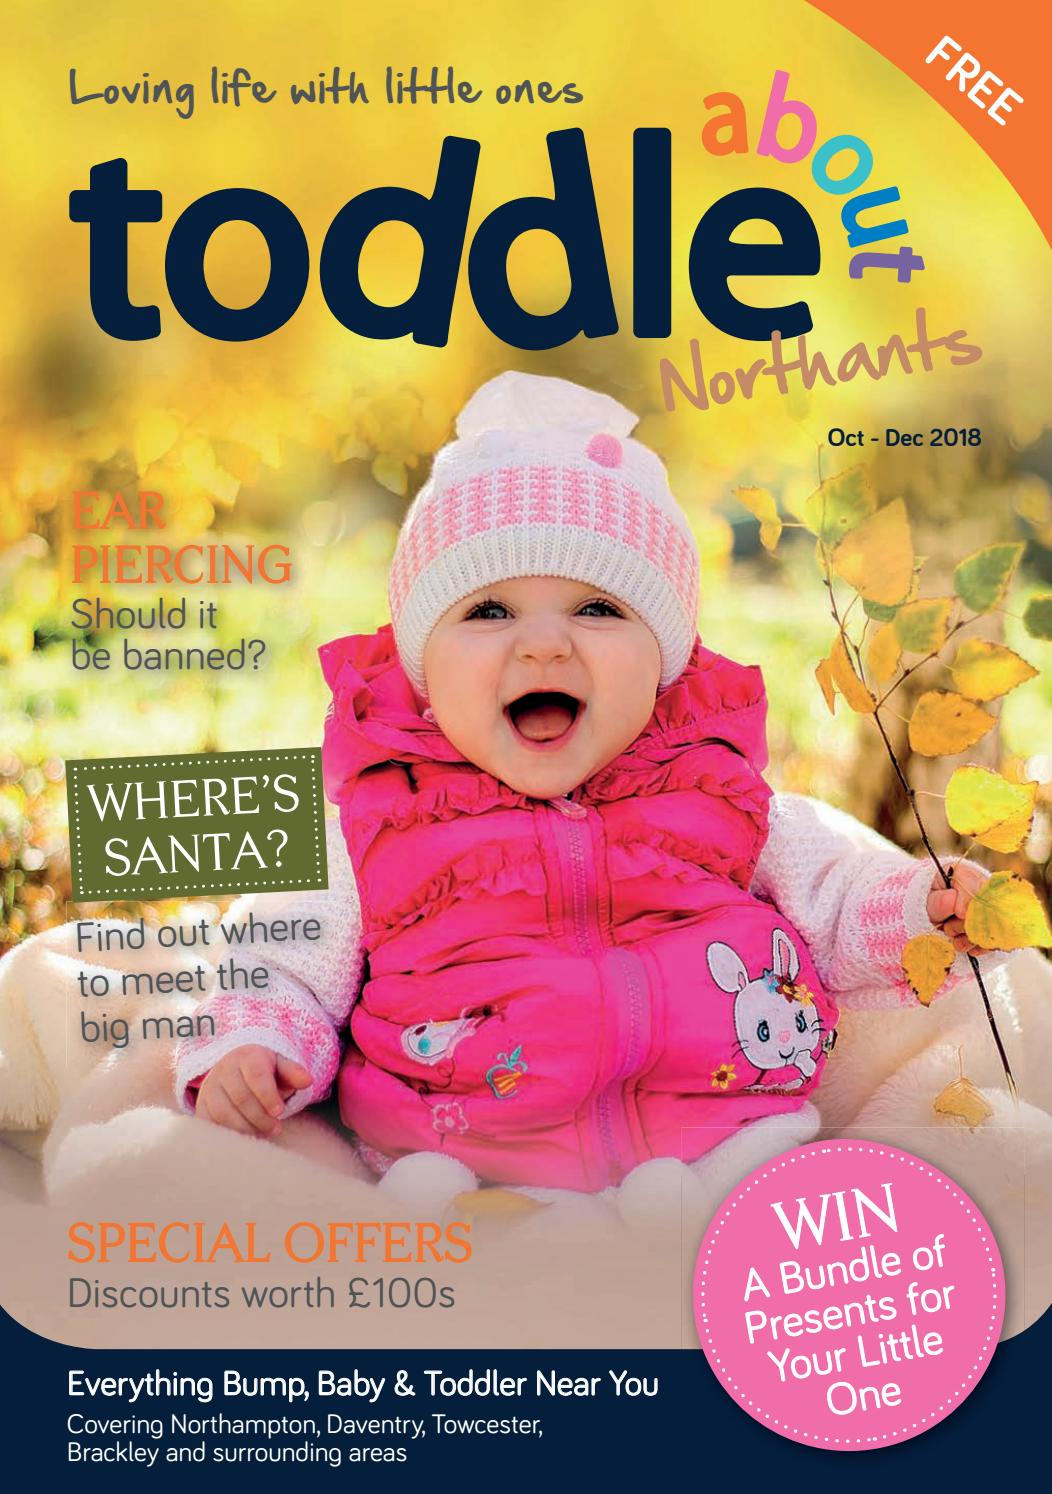 64fc62a61 Toddle About Northamptonshire Oct - Dec 2018 by Toddle About - issuu